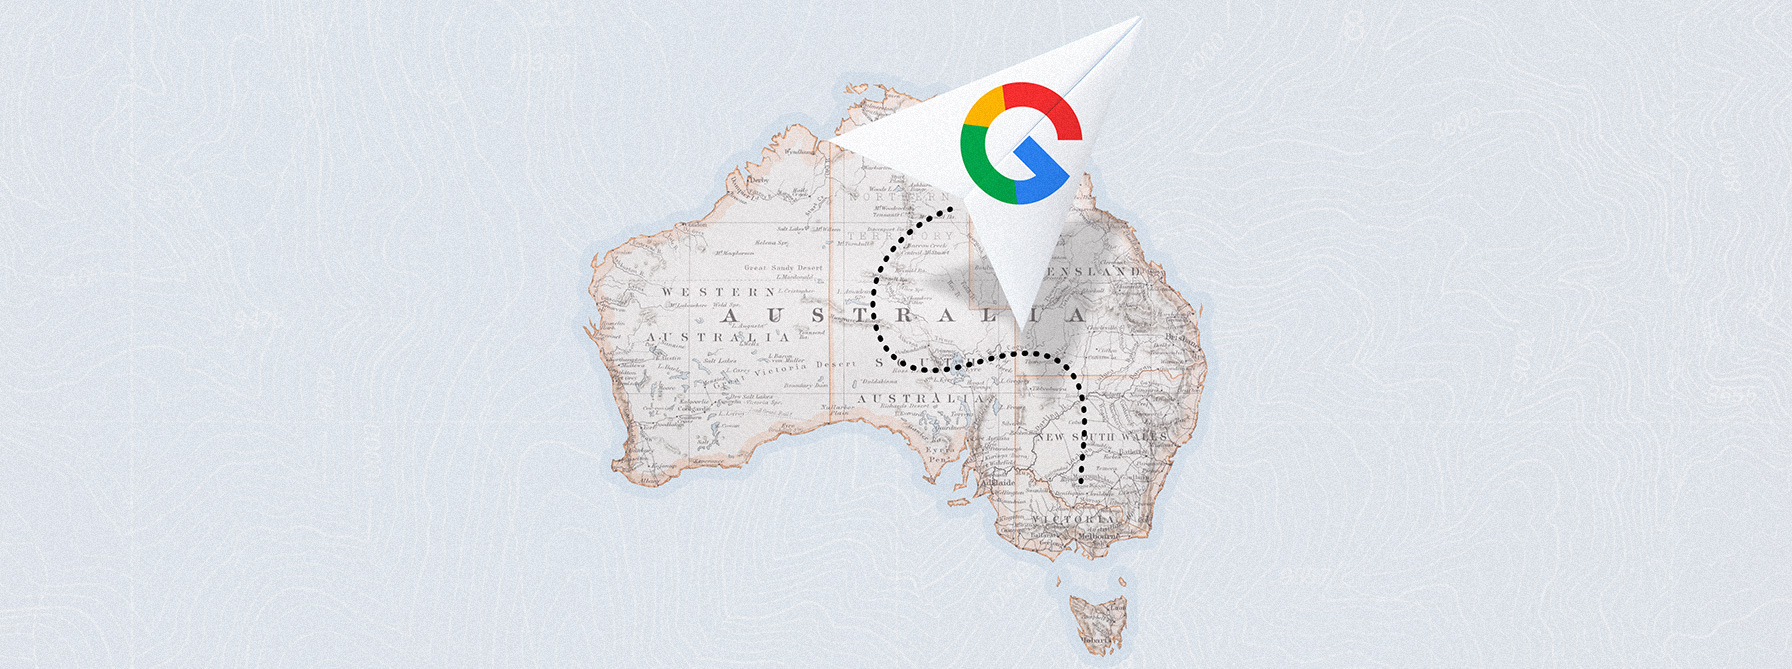 Will Google stay or go? A move that would make Australia the only country alongside China not to have Google search, we look at the implications for consumers and brands.